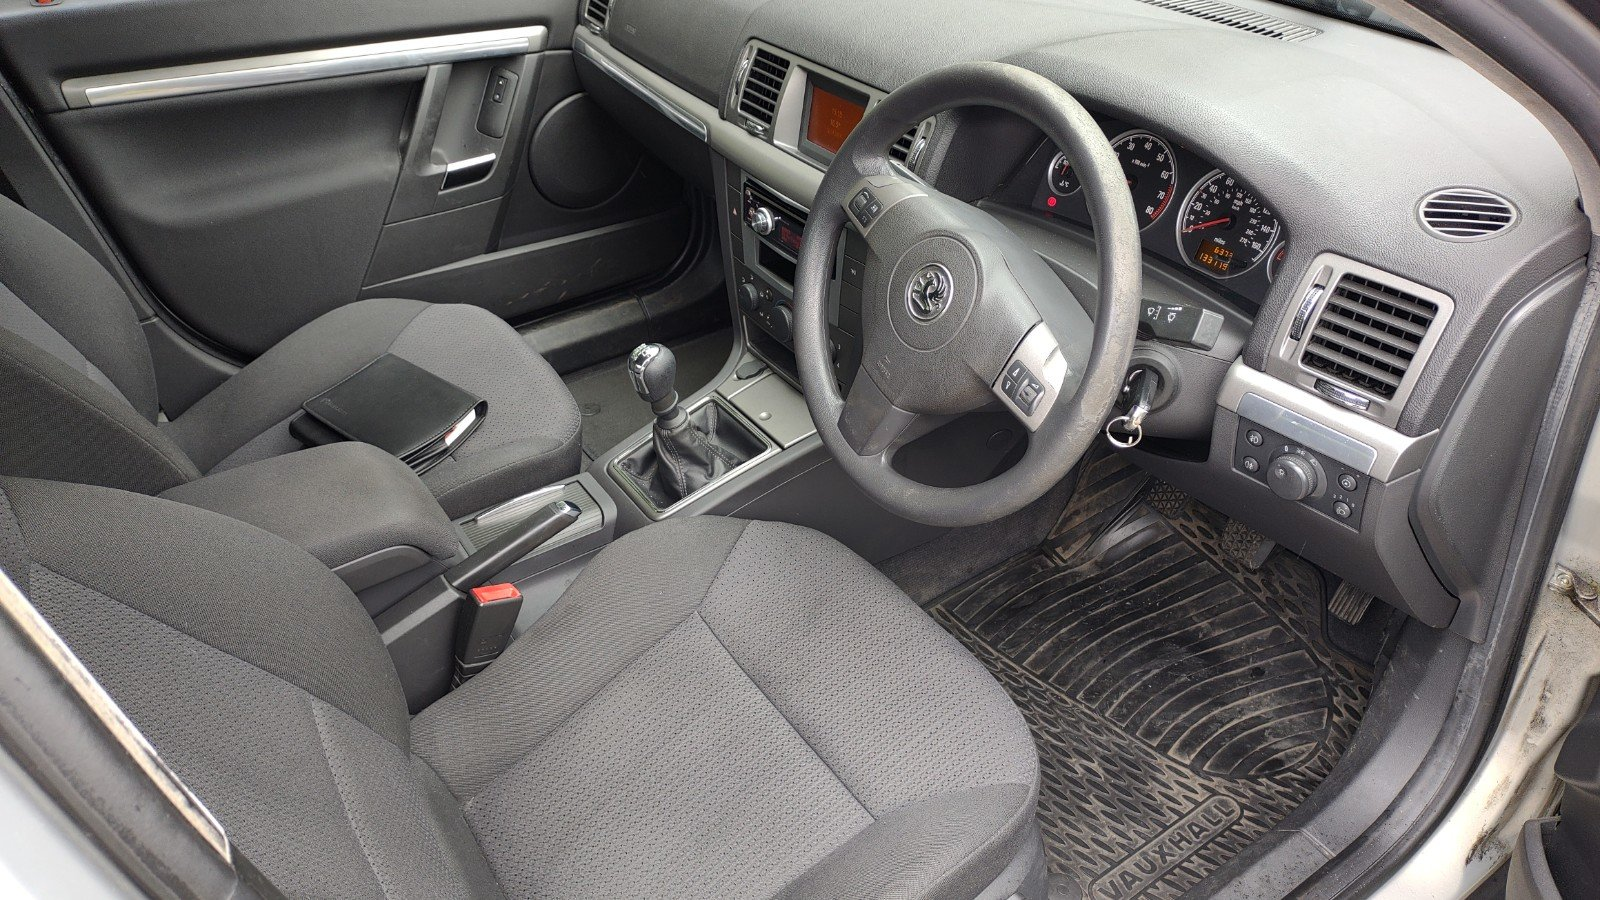 2007 Vectra Exclusive, technician owned, for sale For Sale (picture 4 of 5)